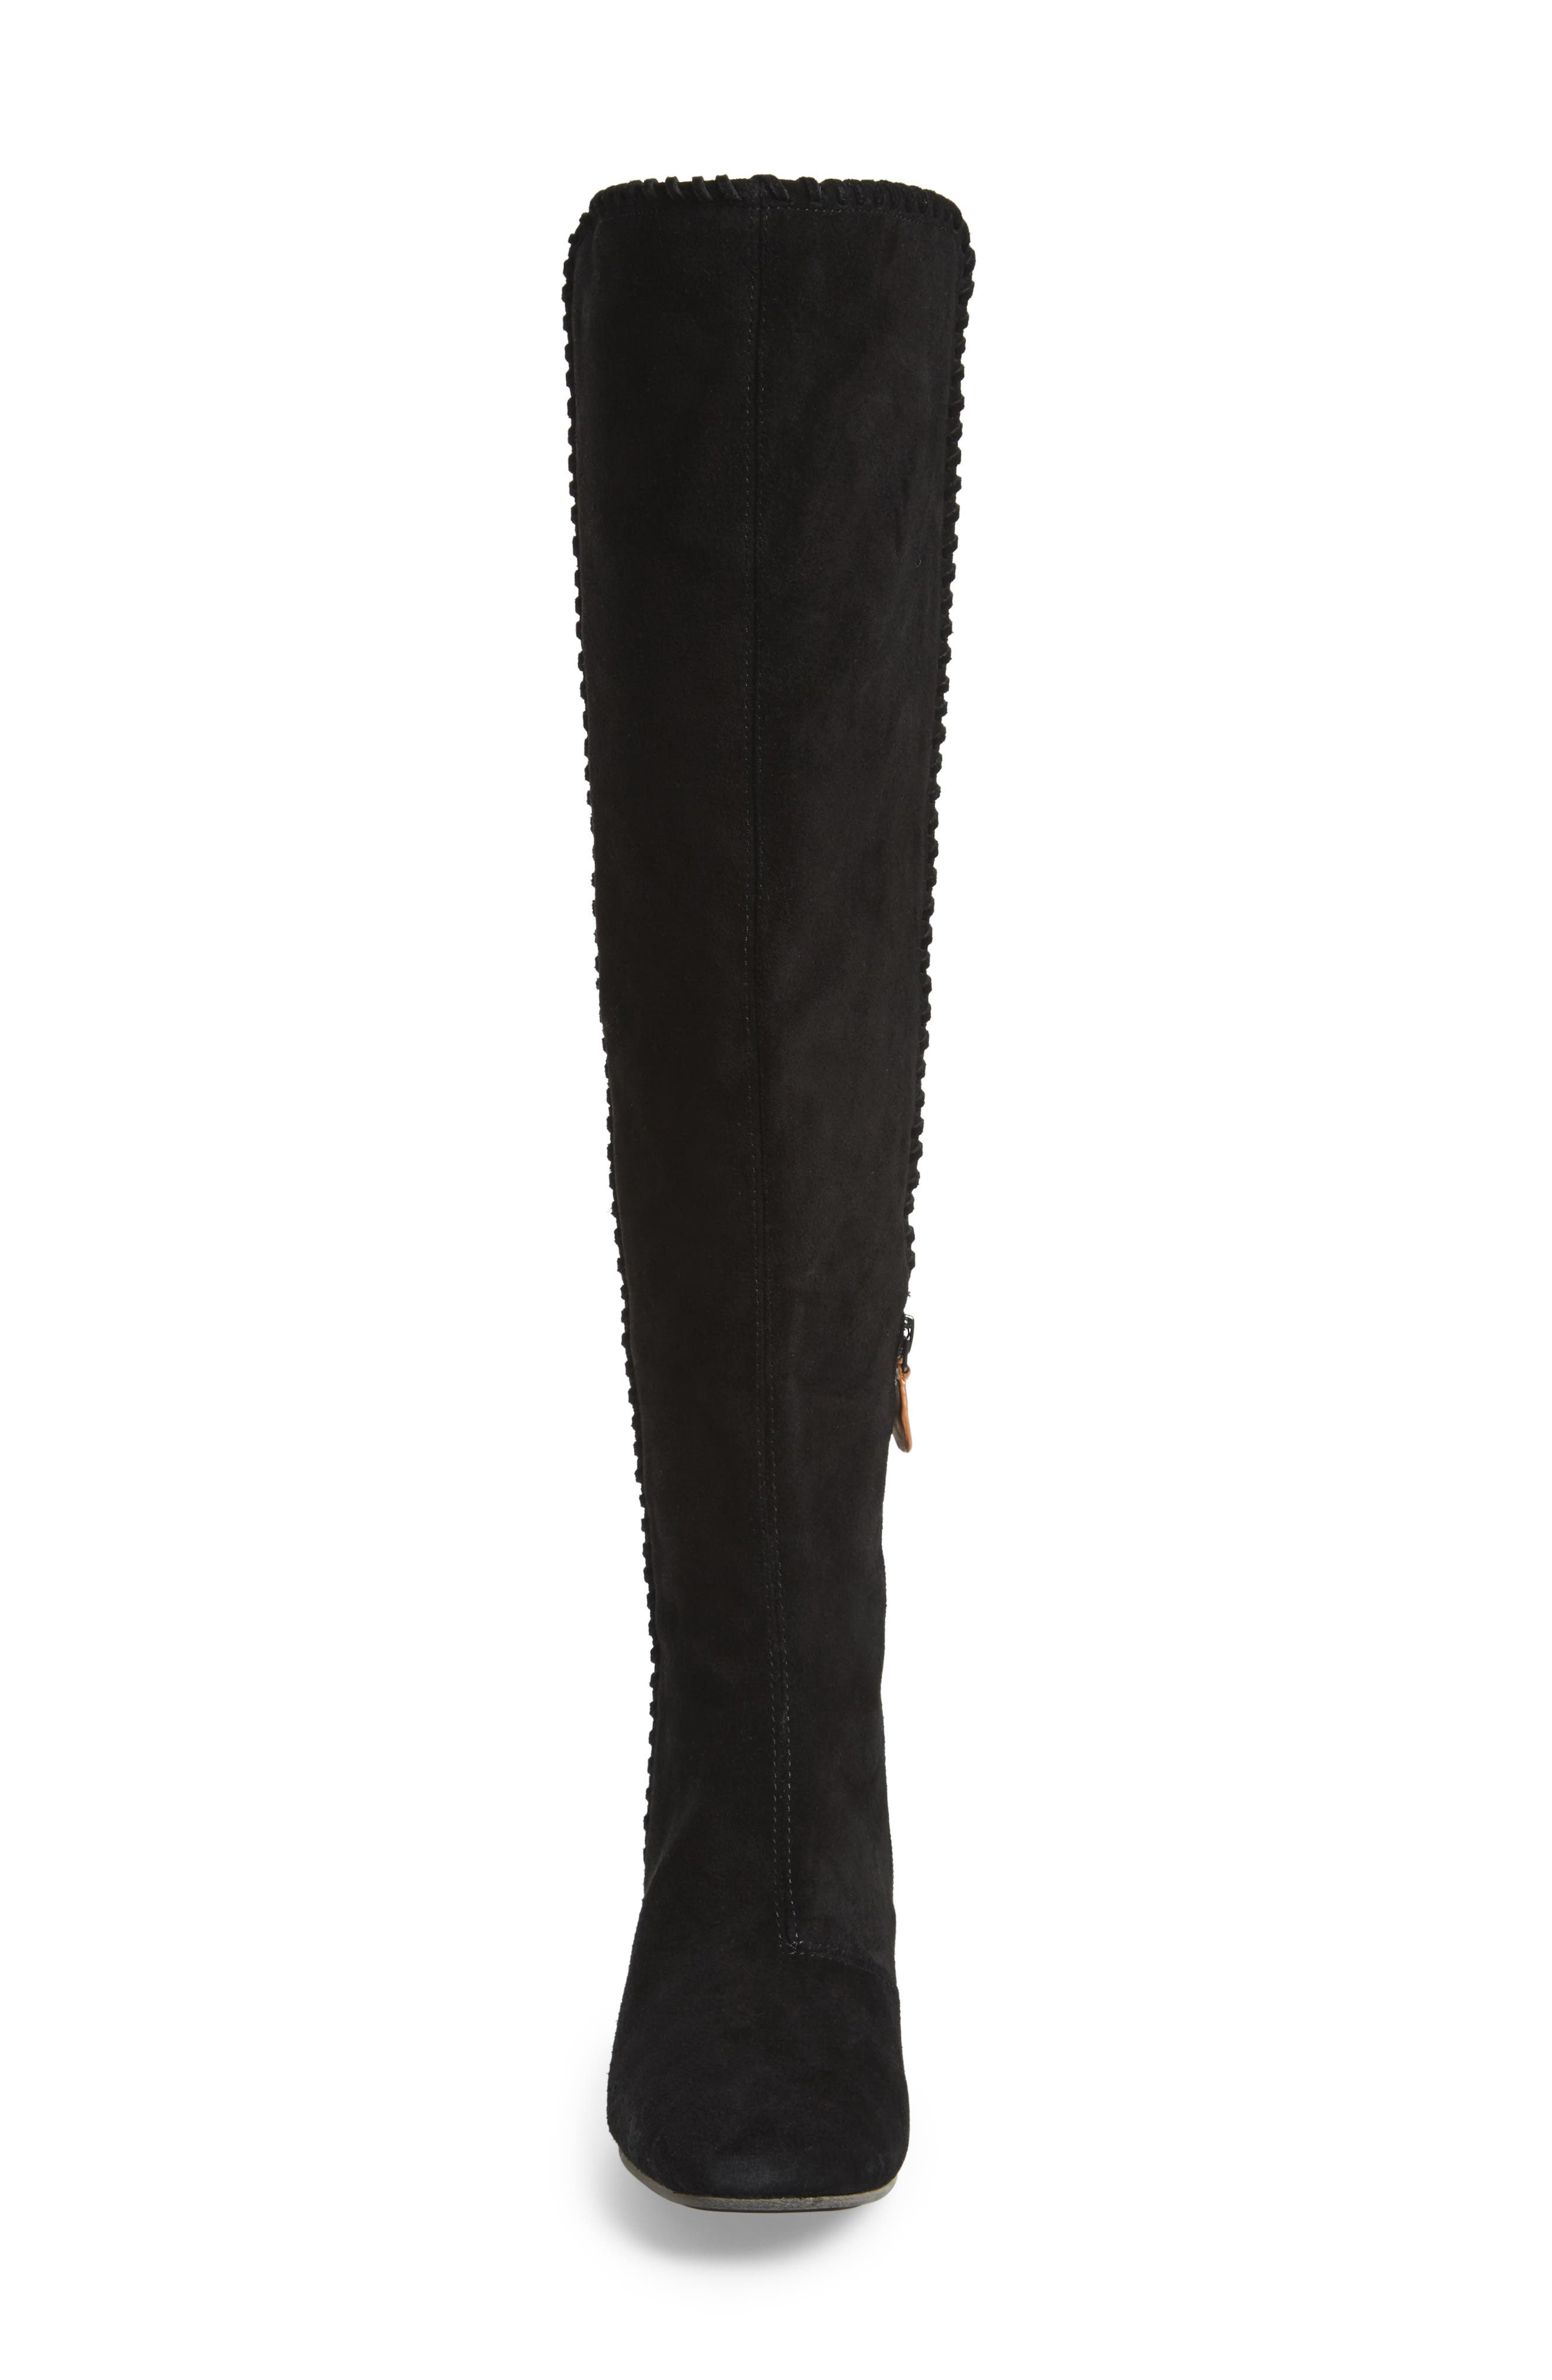 Gentle Souls Emery Over the Knee Boot,                             Alternate thumbnail 4, color,                             001